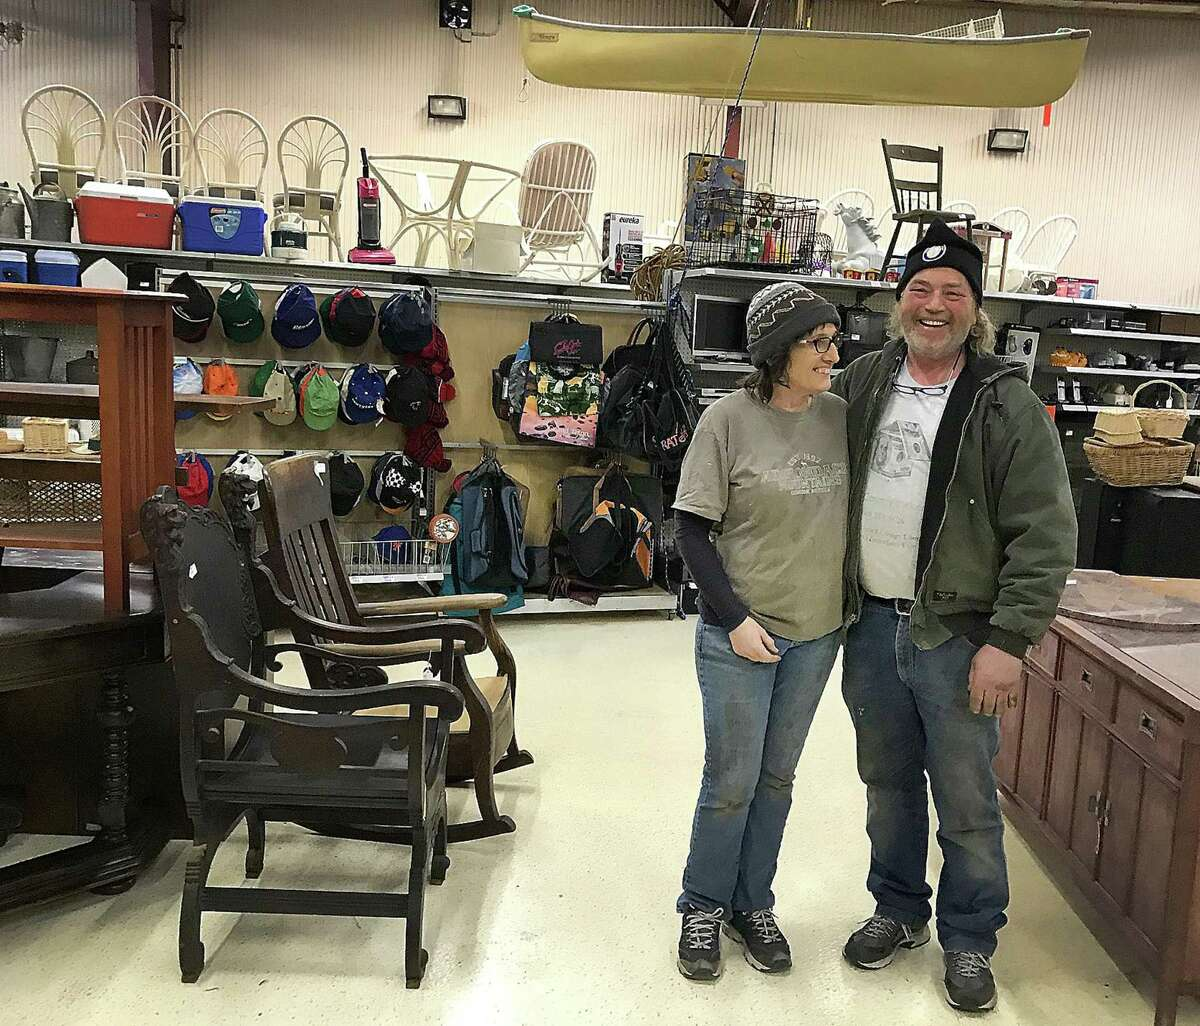 Dawn and Mert Larmore, owners of Litchfield County Pickers, stand in their new location in New Milford, Conn., on Friday, Feb. 9, 2018.